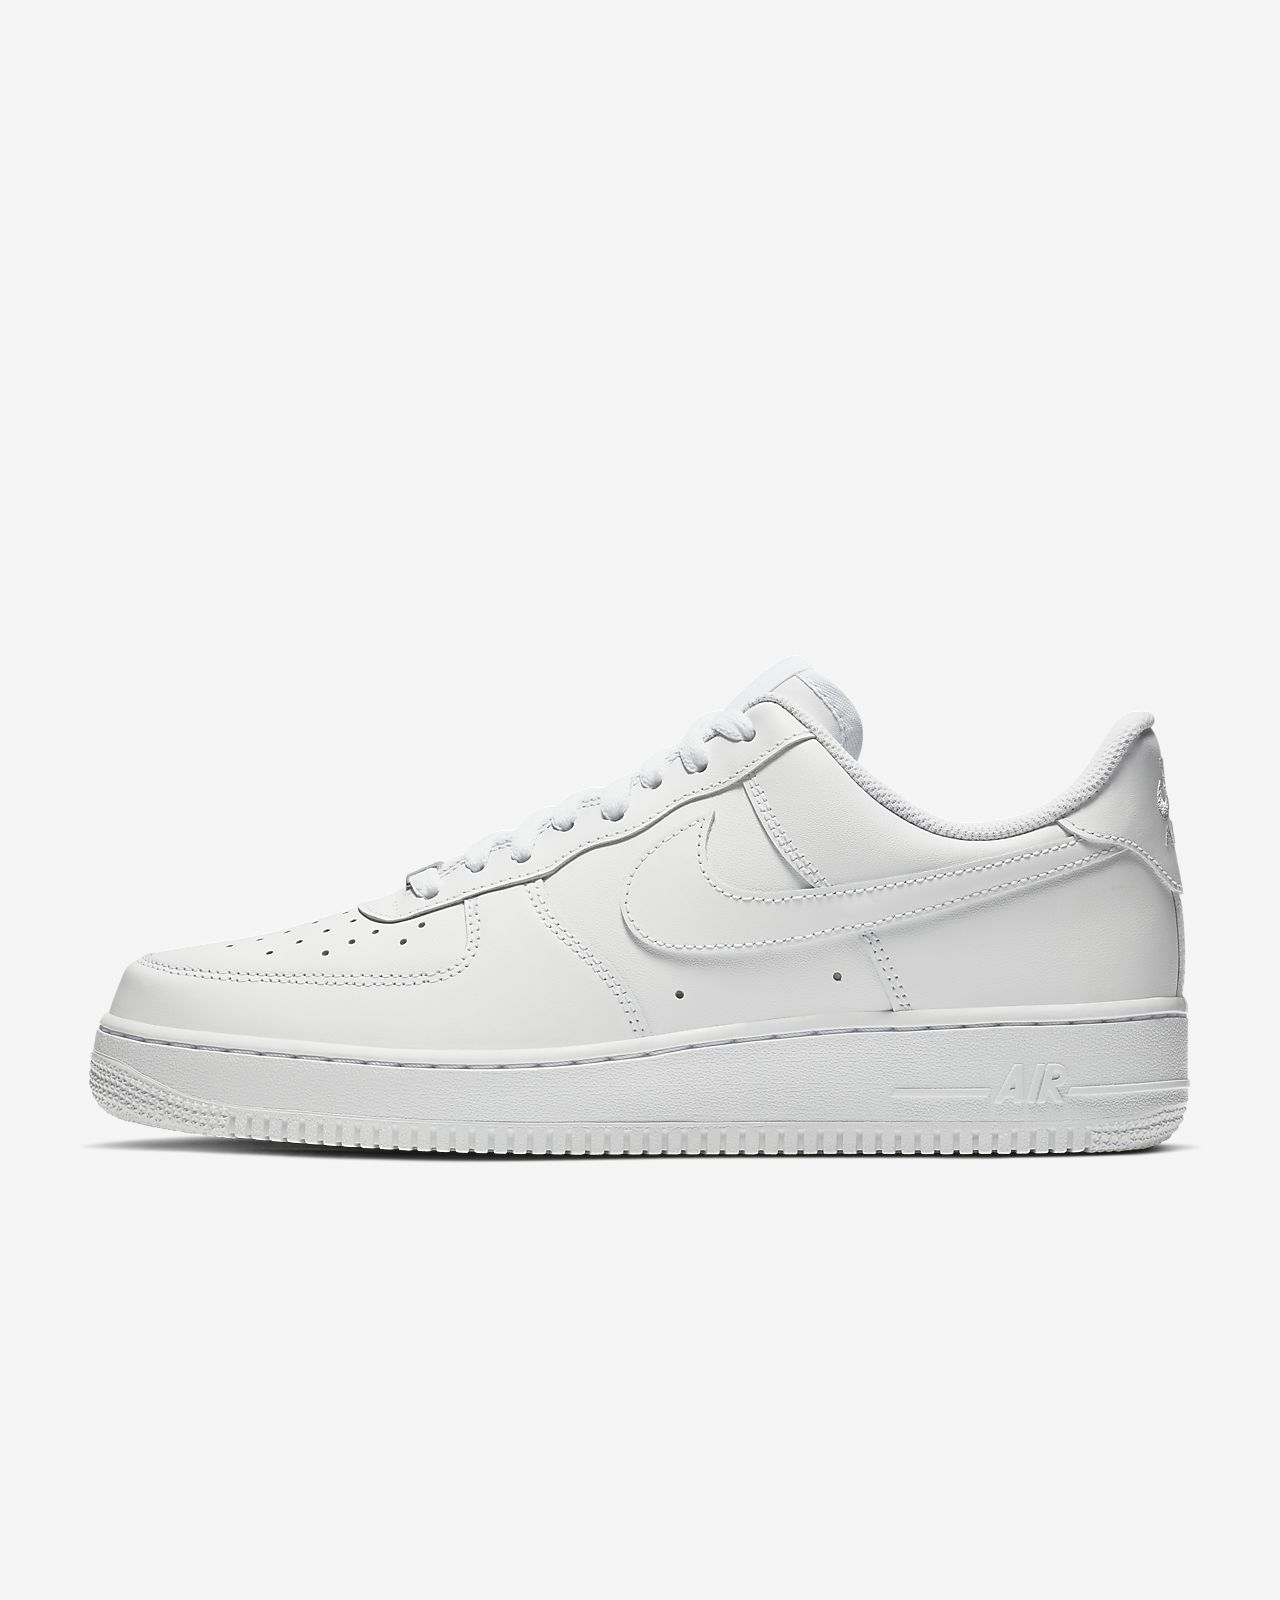 504331383b6 Nike Air Force 1  07 Shoe. Nike.com